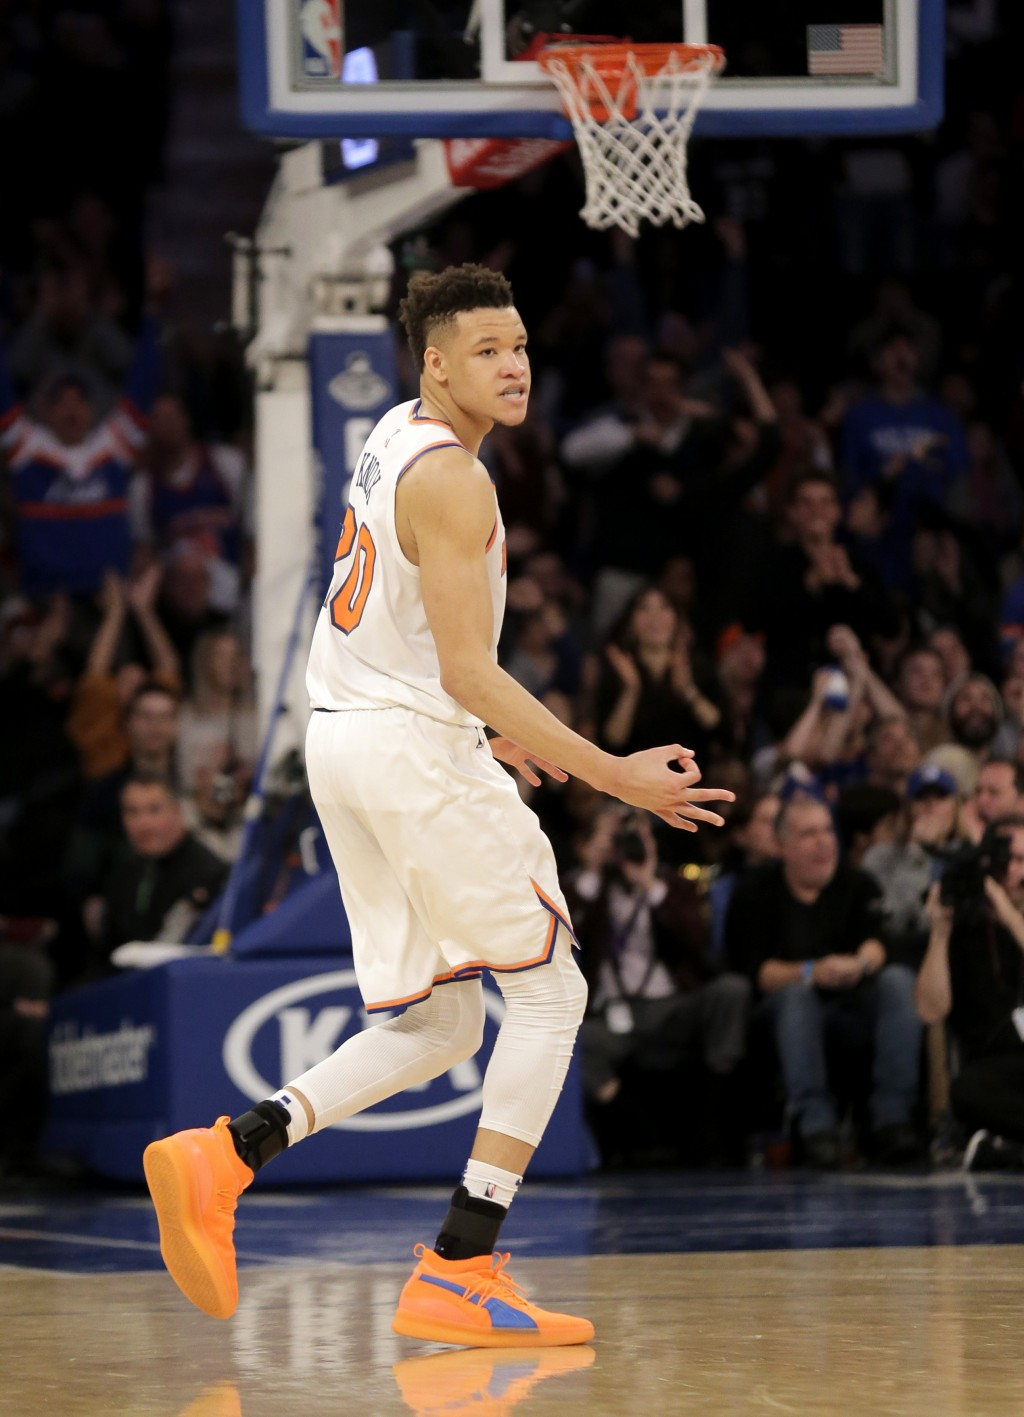 New York Knicks' Kevin Knox reacts after hitting a three-point basket during the second half of the NBA basketball game against the Philadelphia 76ers